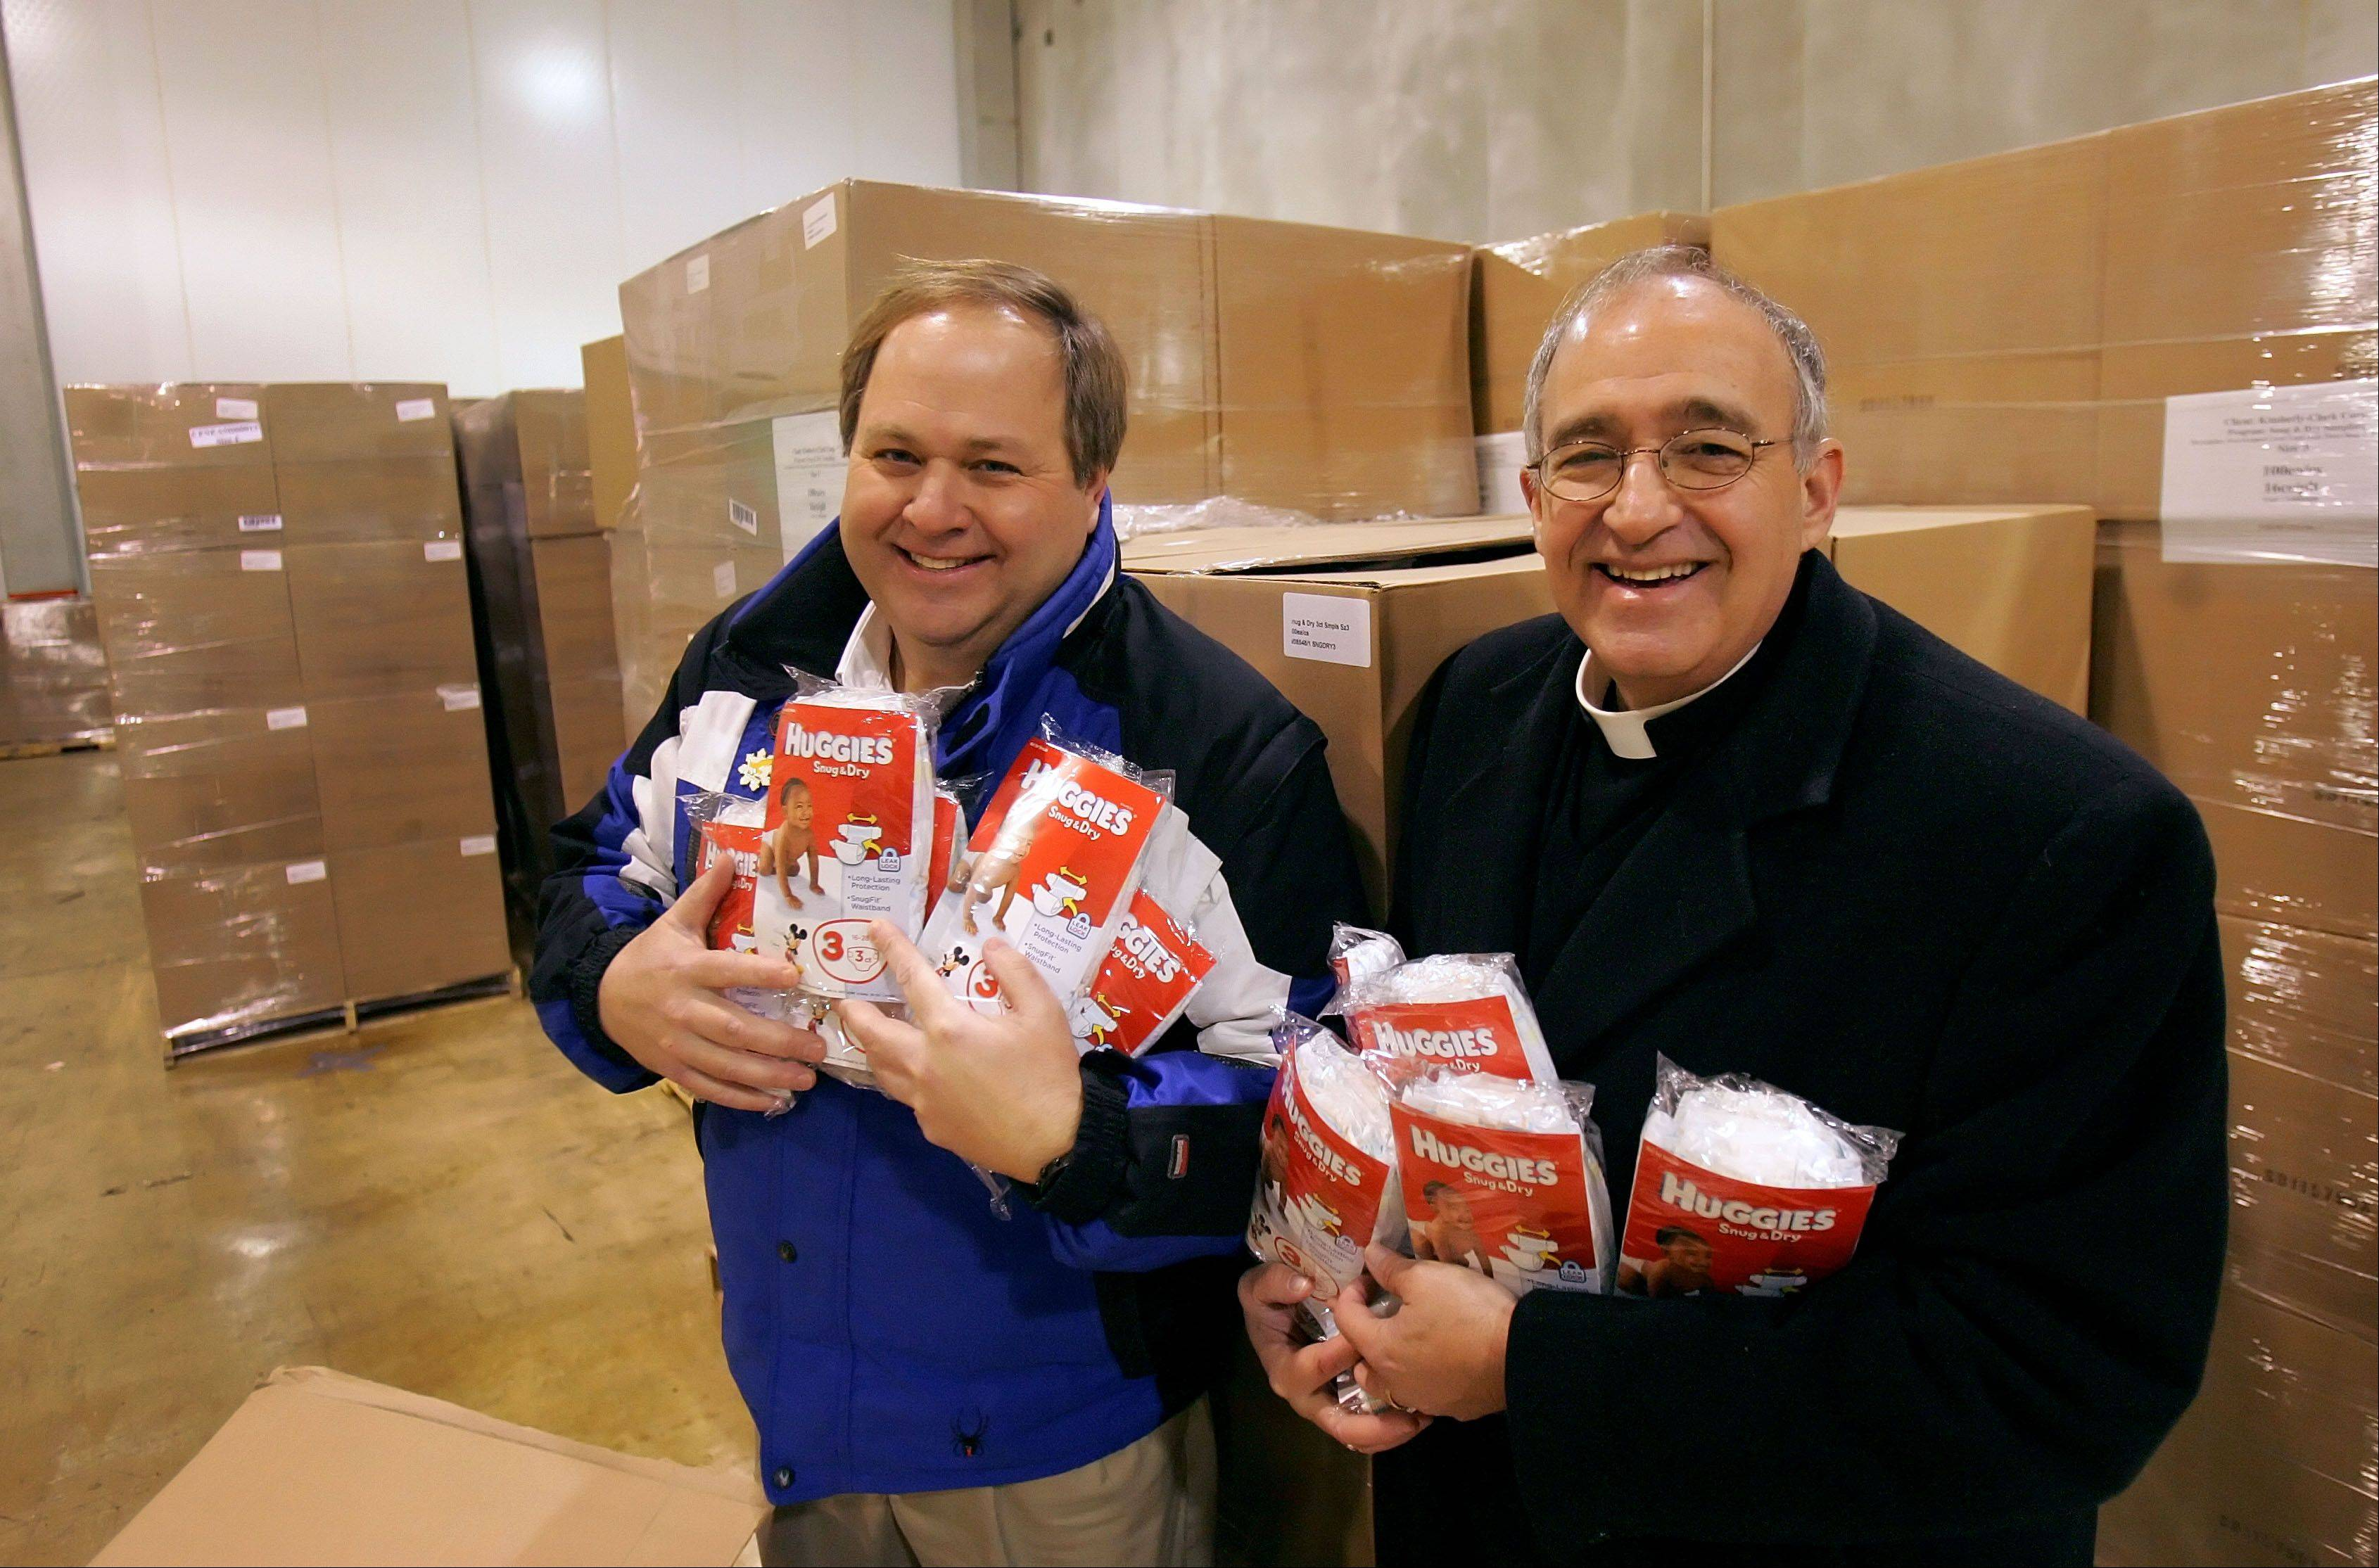 The Rev. Jim Swarthout, right, executive director of Samaritan Interfaith Counseling Center of the Northwest Suburbs, and Wauconda Township Supervisor Glenn Swanson, are working with other agencies to launch a diaper bank in Lake County.